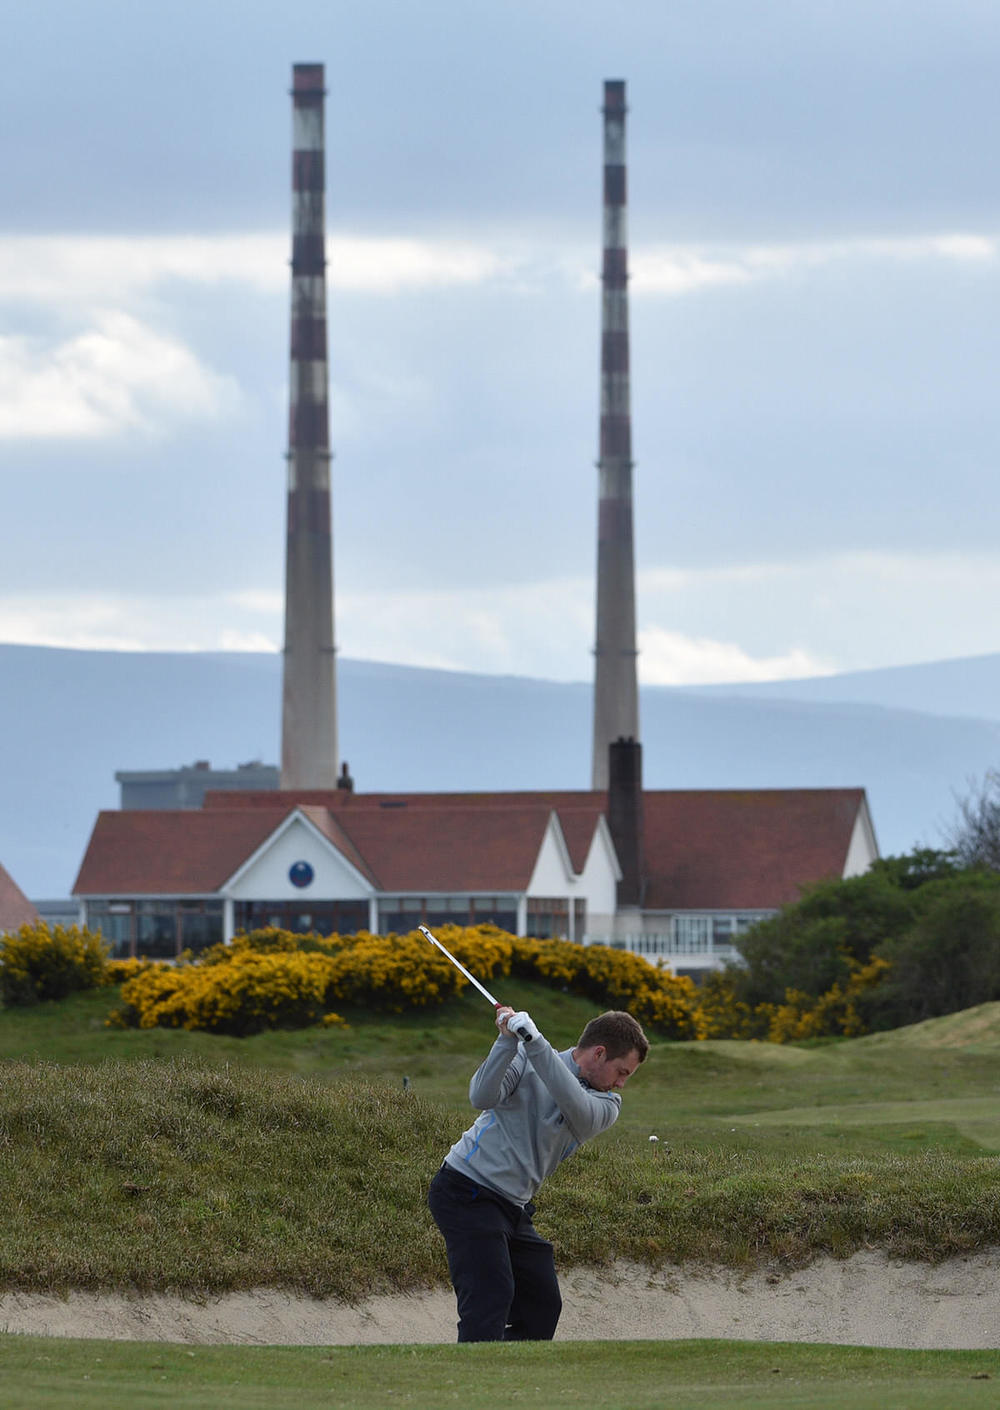 Jack Hume (Naas) playing from the bunker at the 14th hole in practice. Picture by Pat Cashman